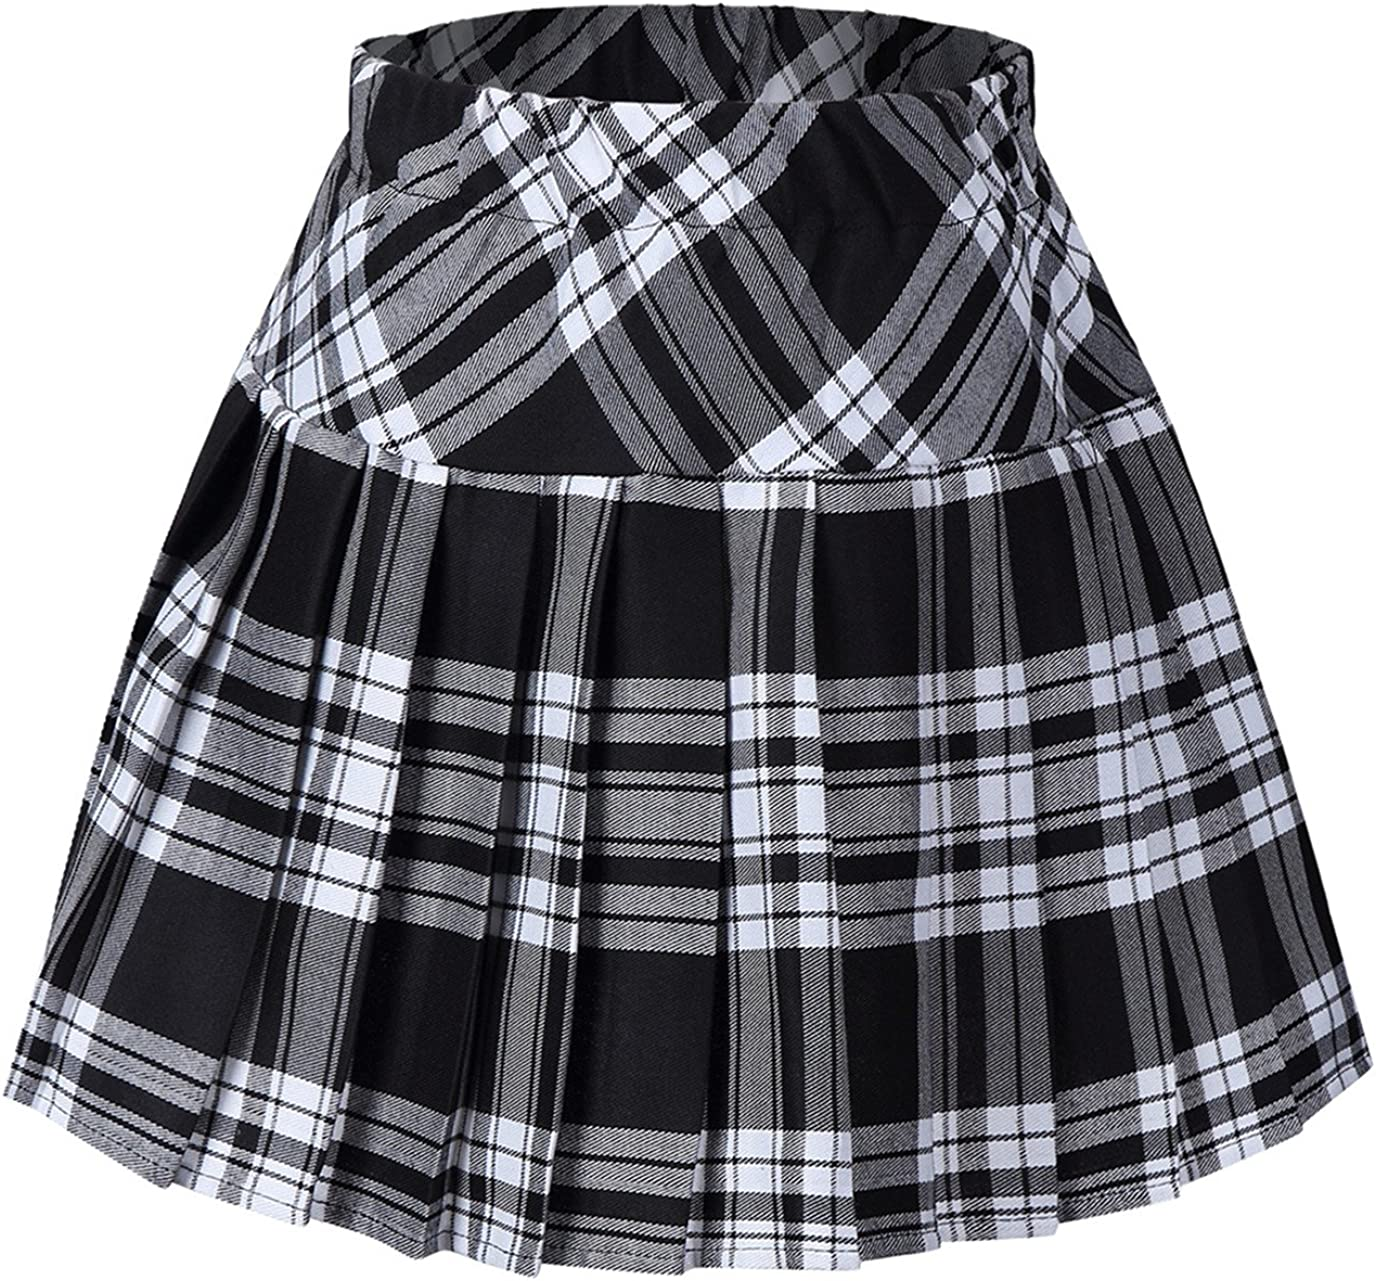 Tremour Women's High Waist Special price for a limited time 2021 spring and summer new Elastic Plaid Mini Pleated Skirt